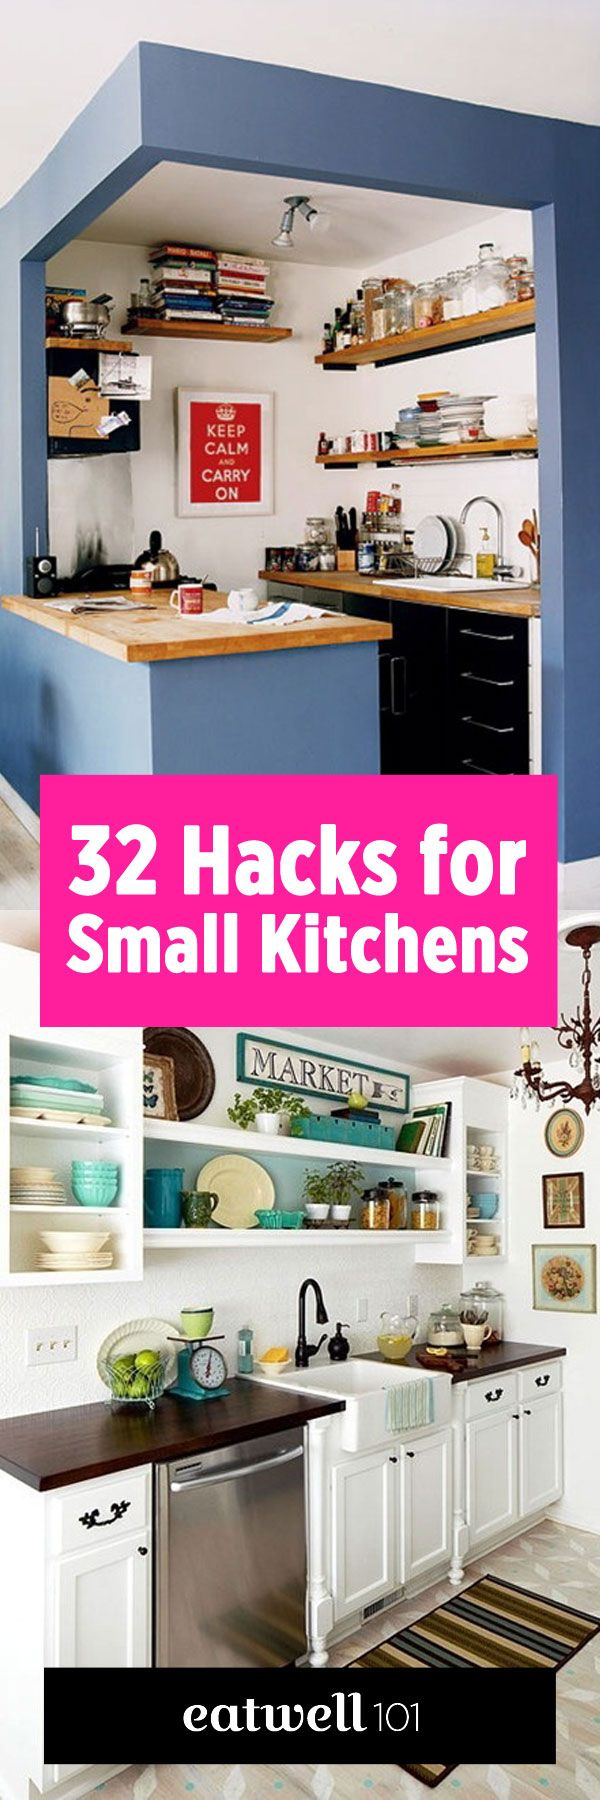 Best 25 small kitchen diy ideas on pinterest small kitchen organization small kitchen ideas Kitchen design diy ideas